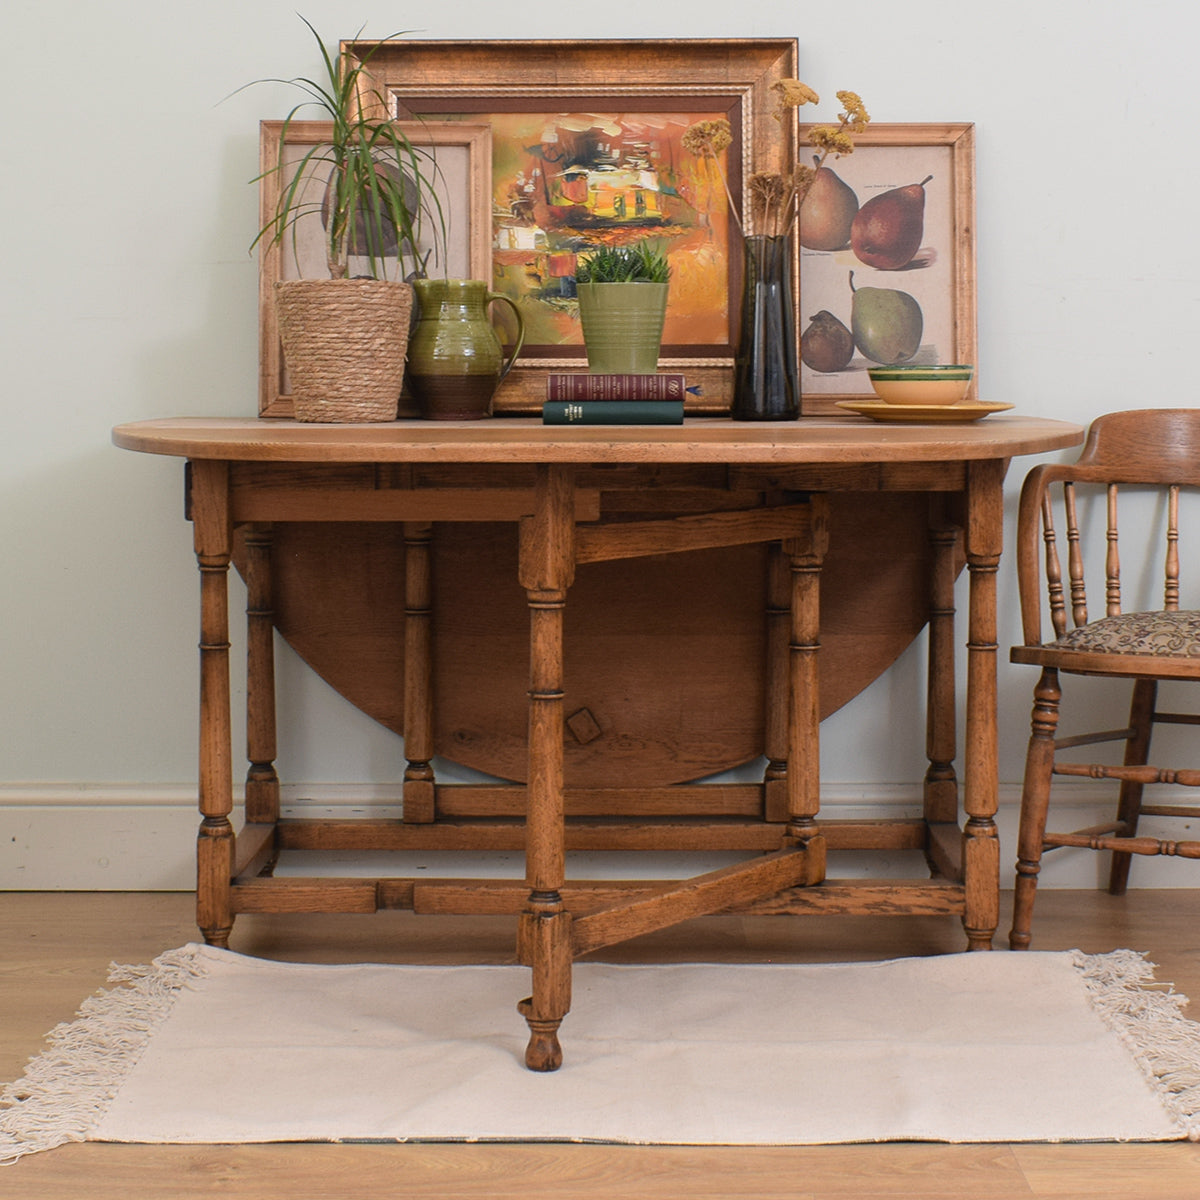 Large Oak Drop-Leaf Dining Table